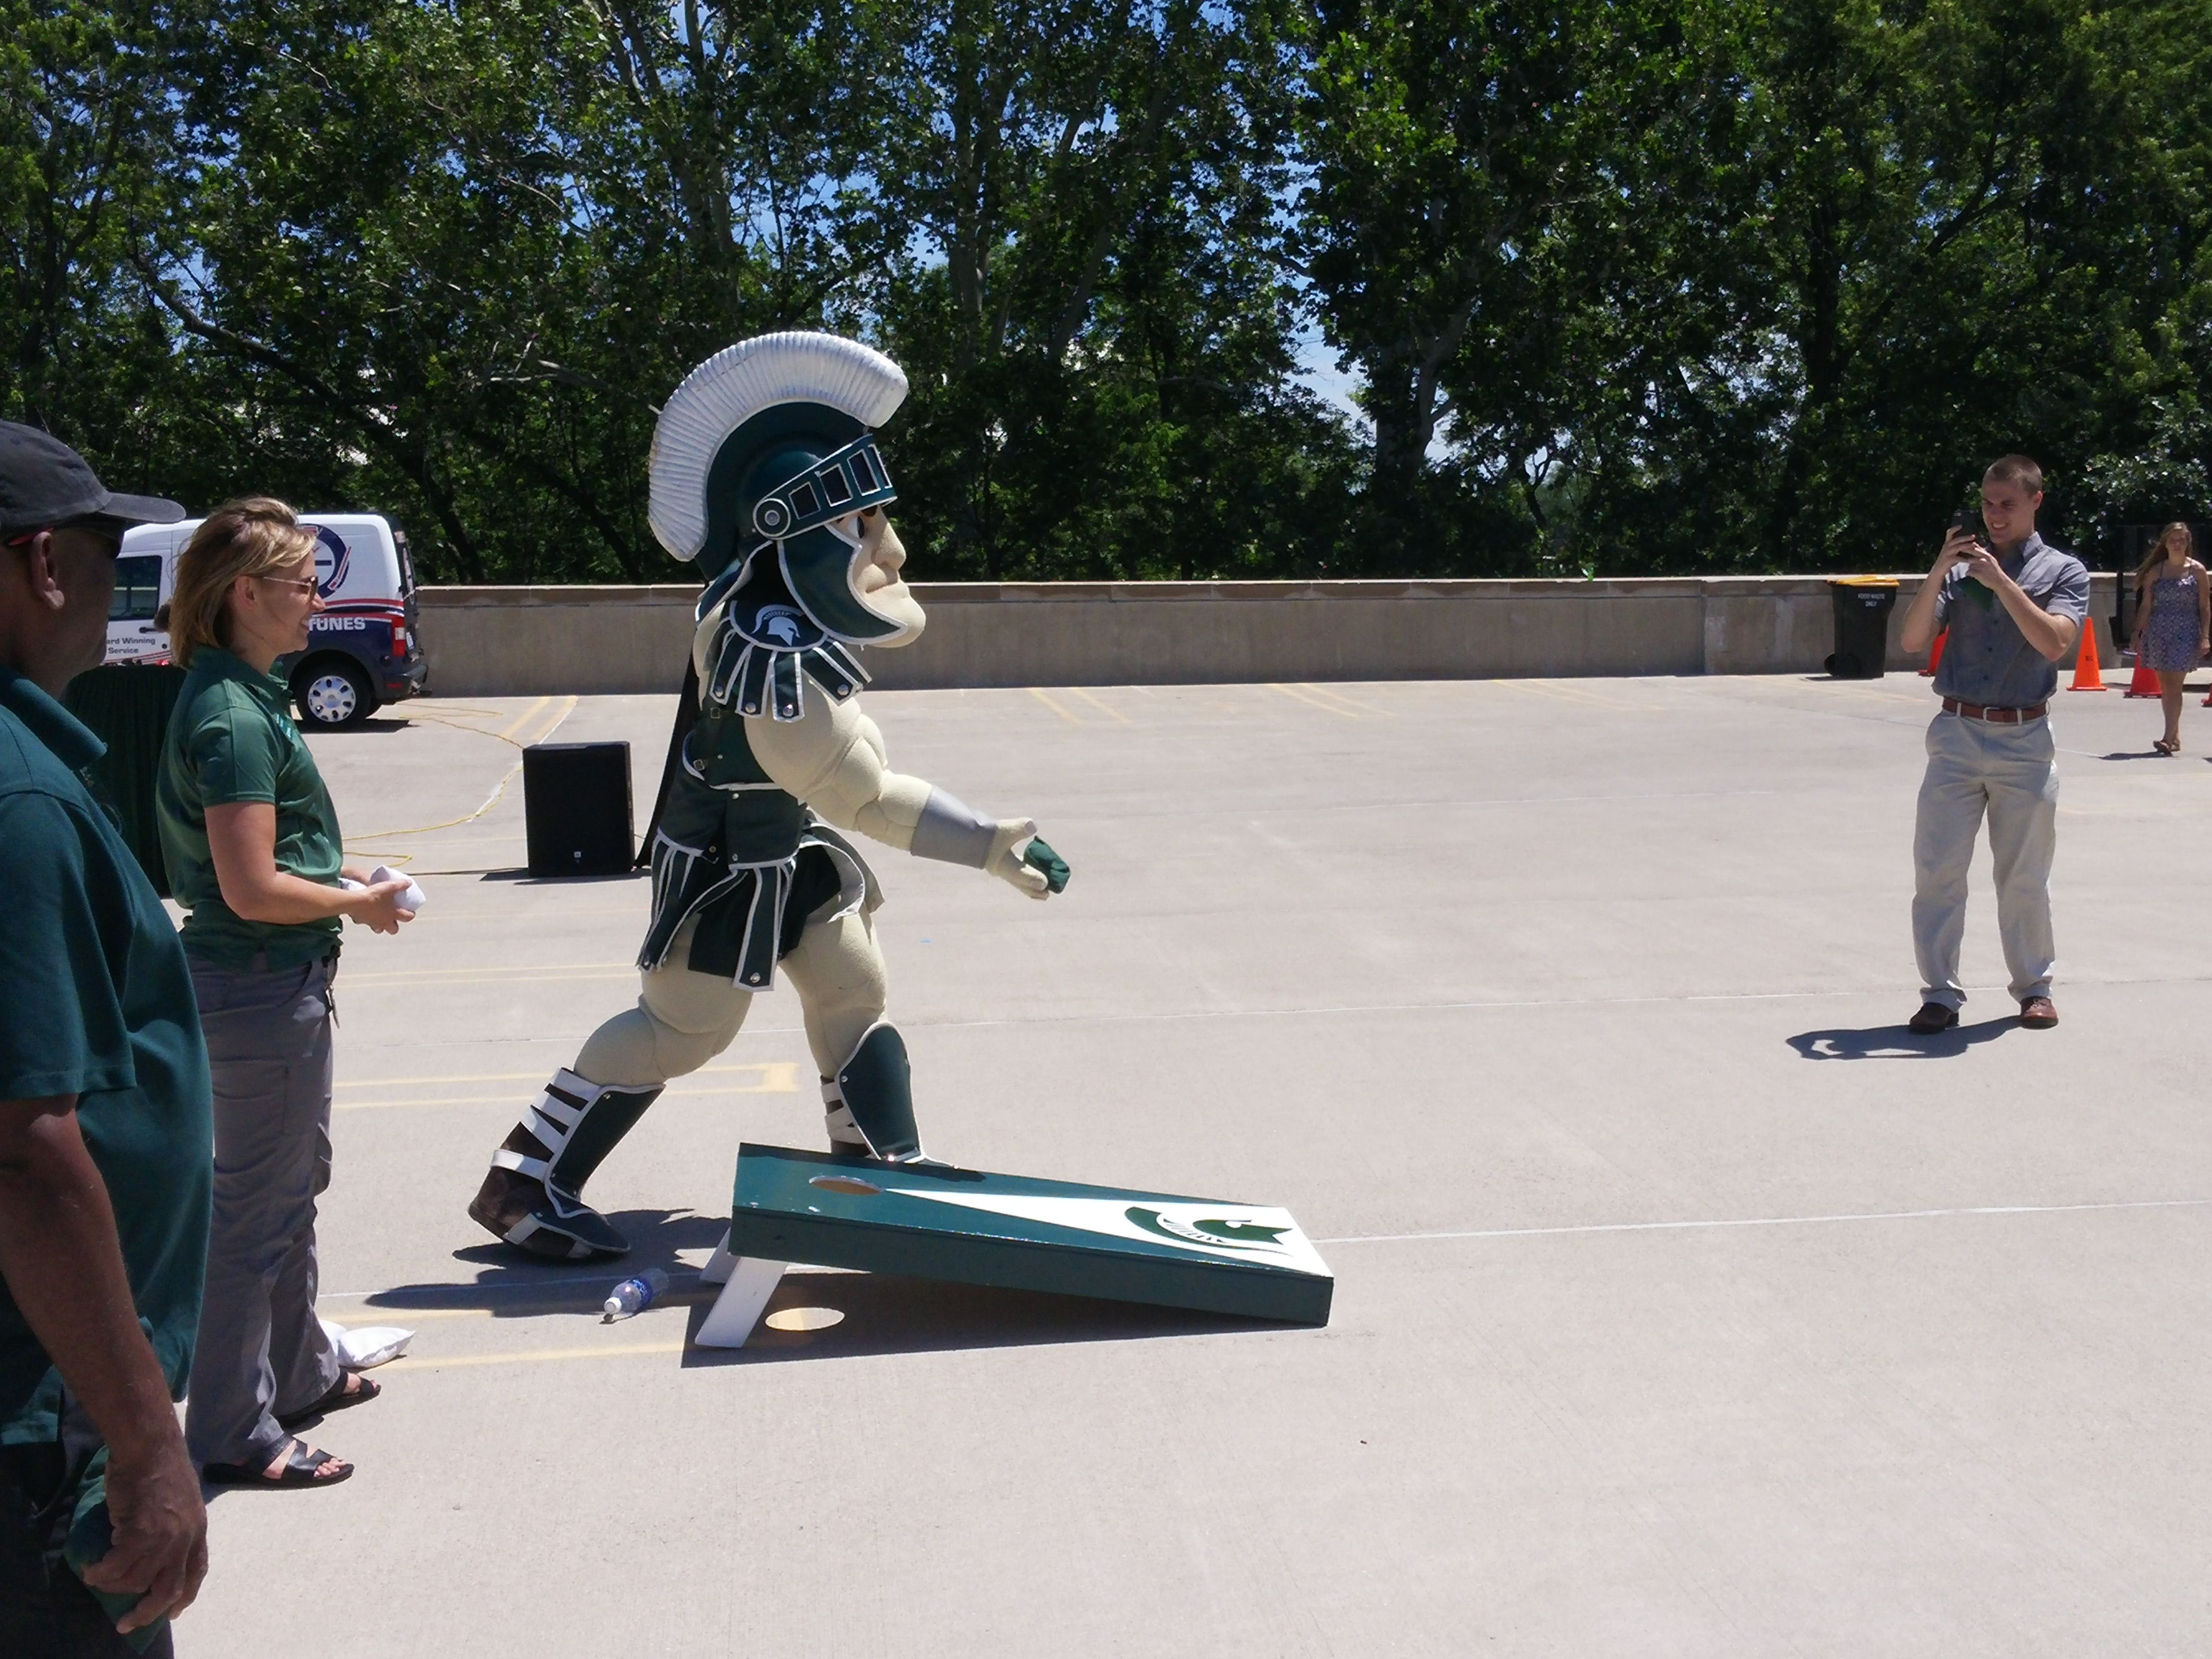 Sparty had a great time playing cornhole at today's RHS picnic!